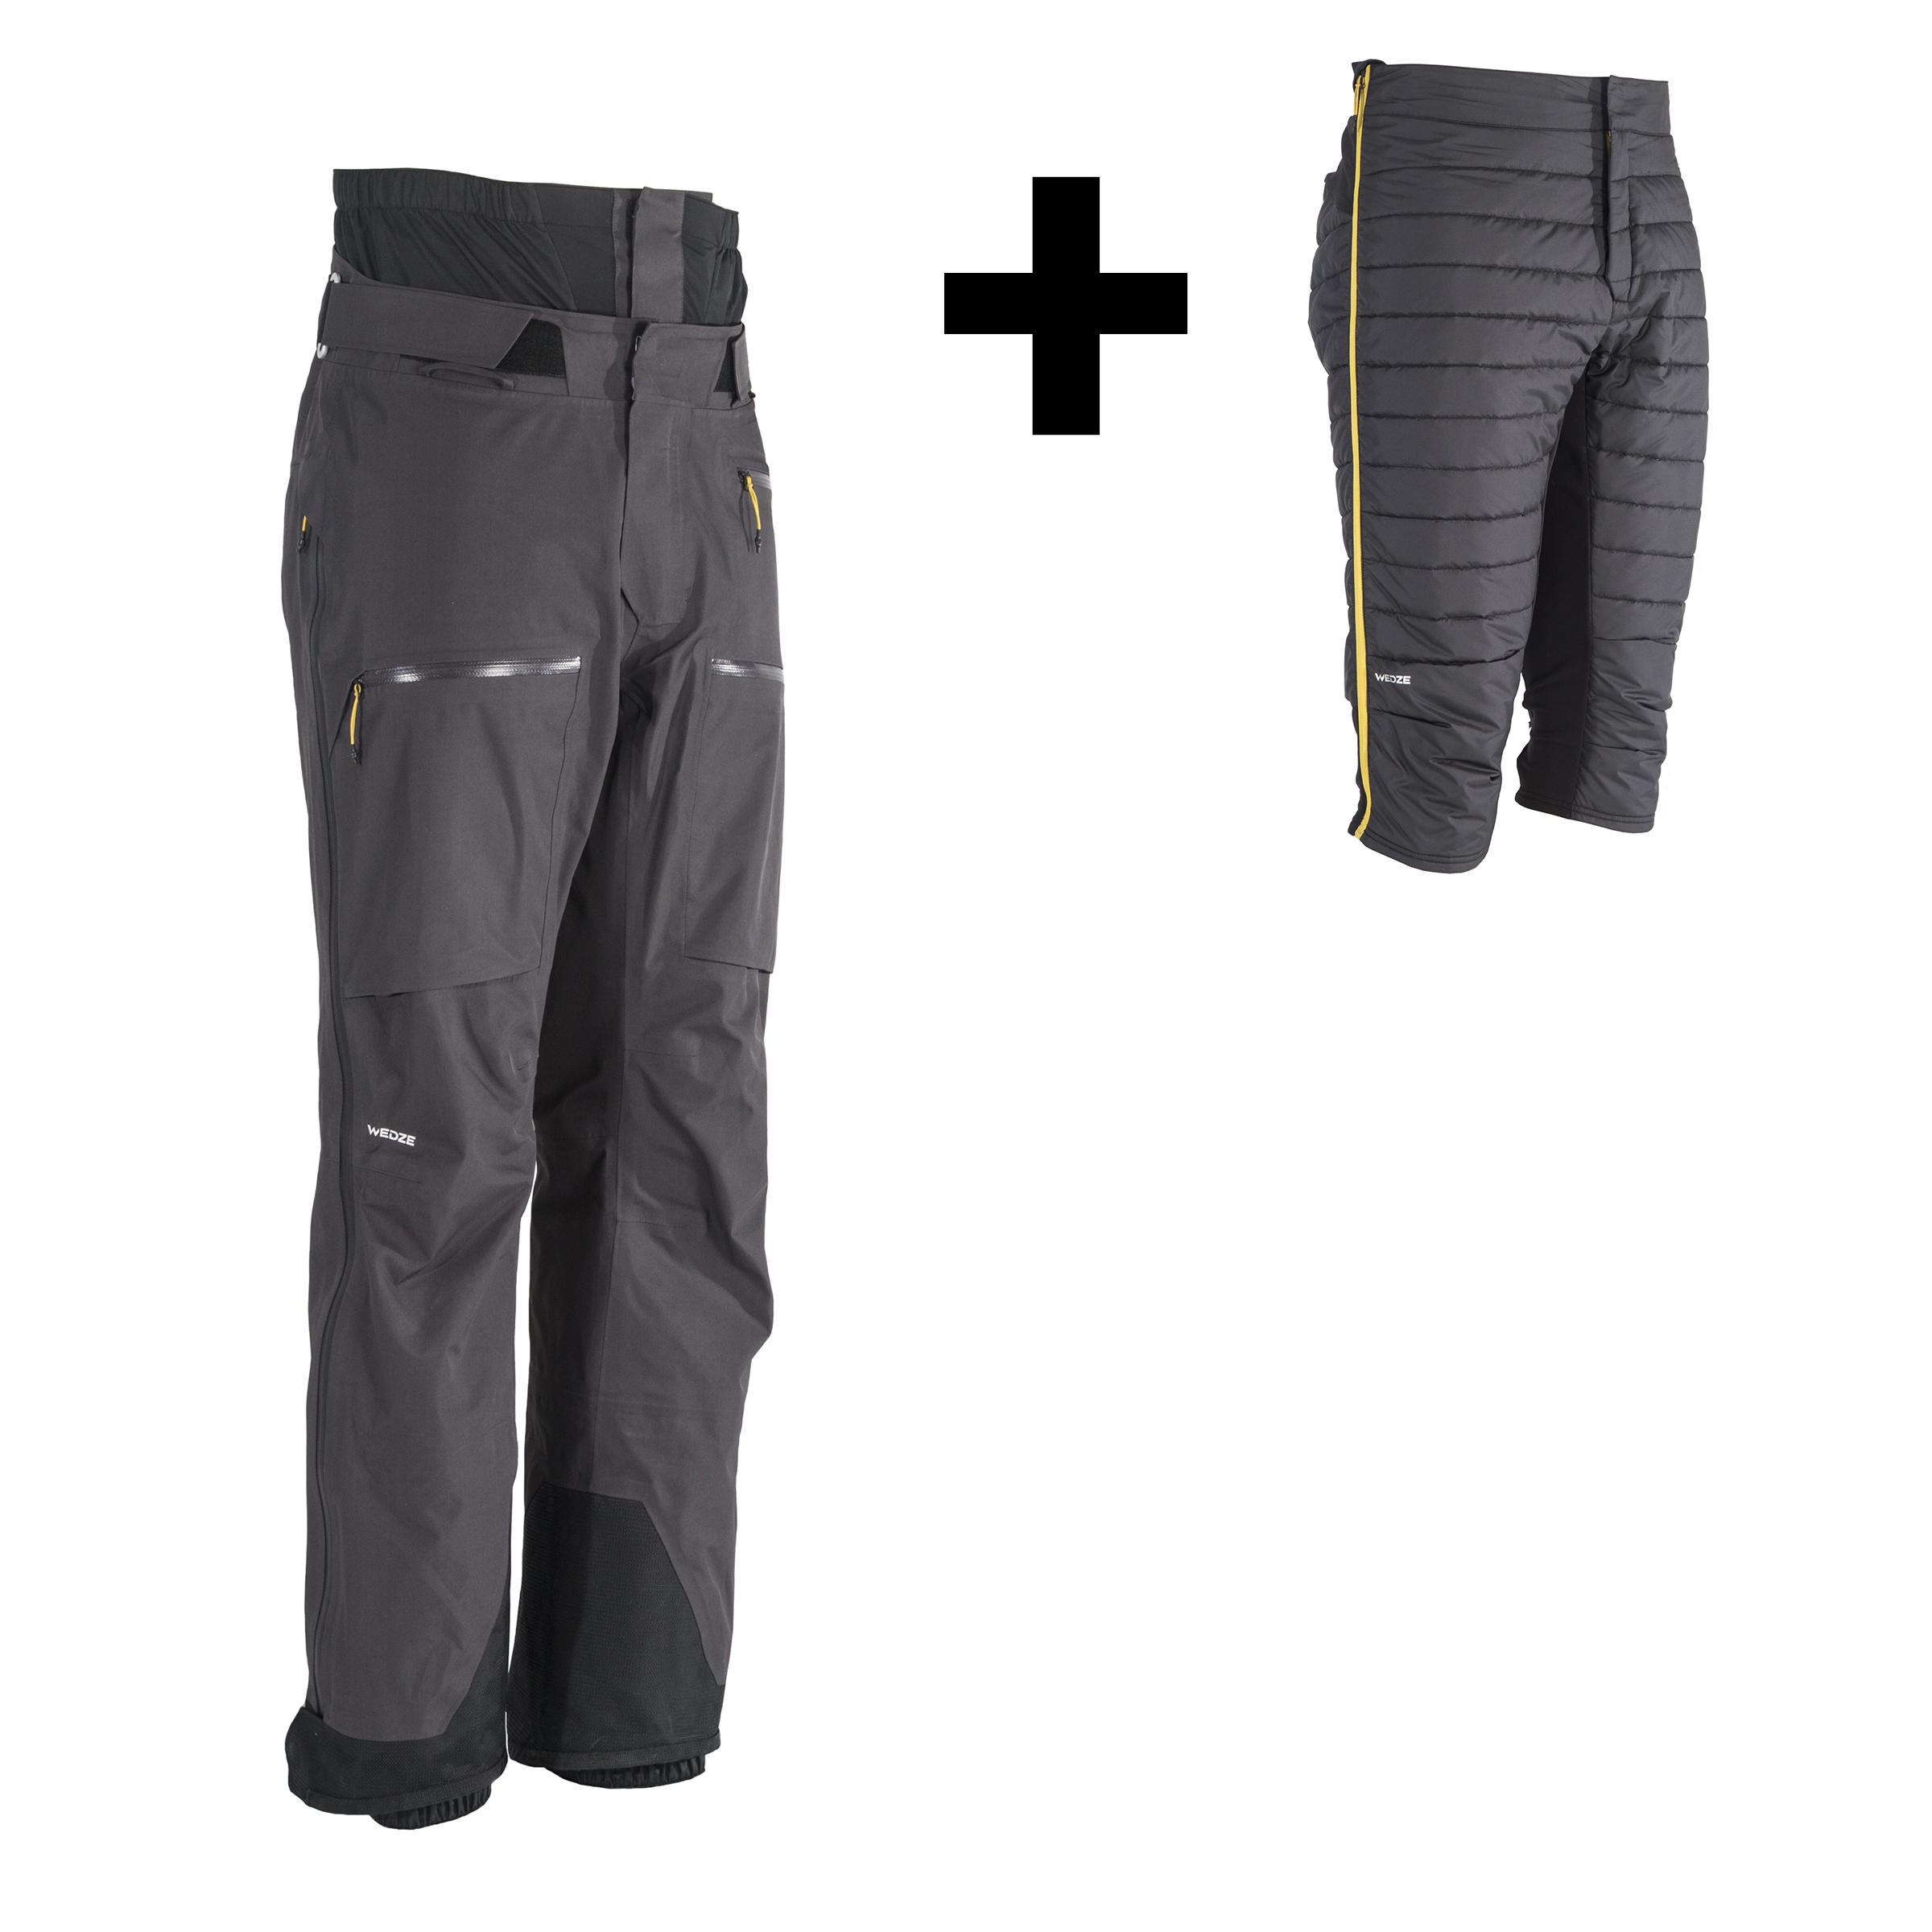 PA 900 Men's Freeride and Free Backcountry Ski Pants - Black